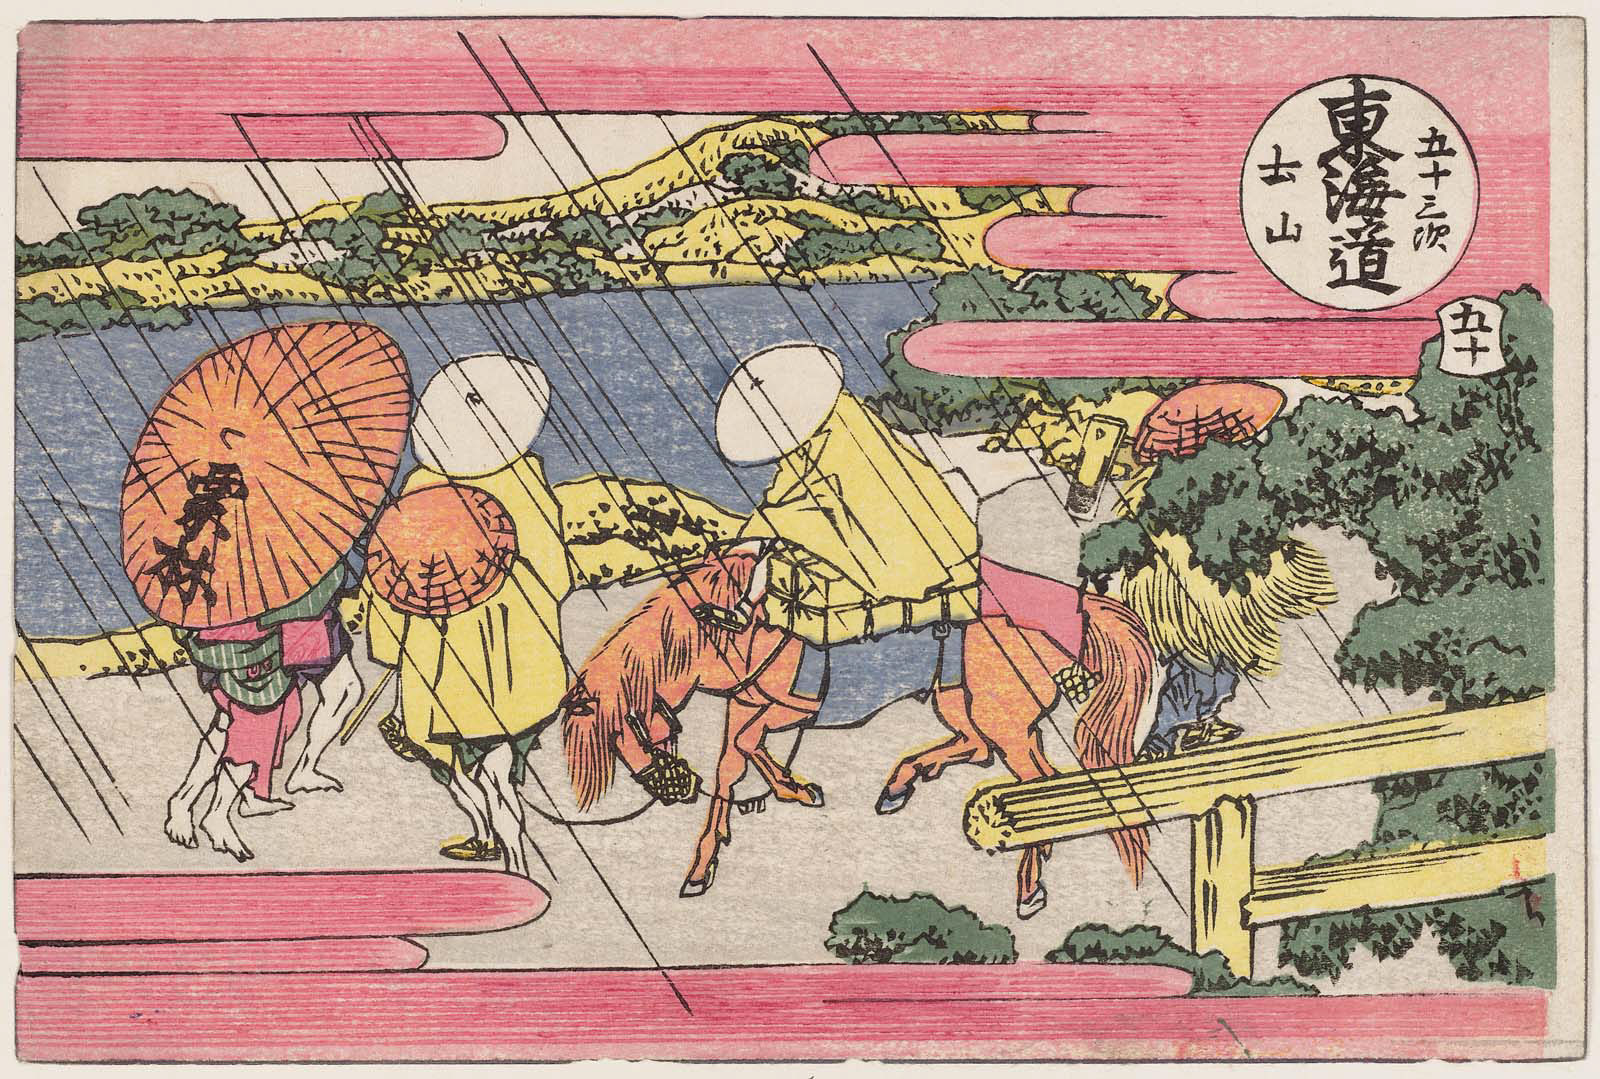 Travelling through the Rain in Tsuchiyama in 1802, from Hokusai, Fifty-three Stations of the Tôkaidô Road